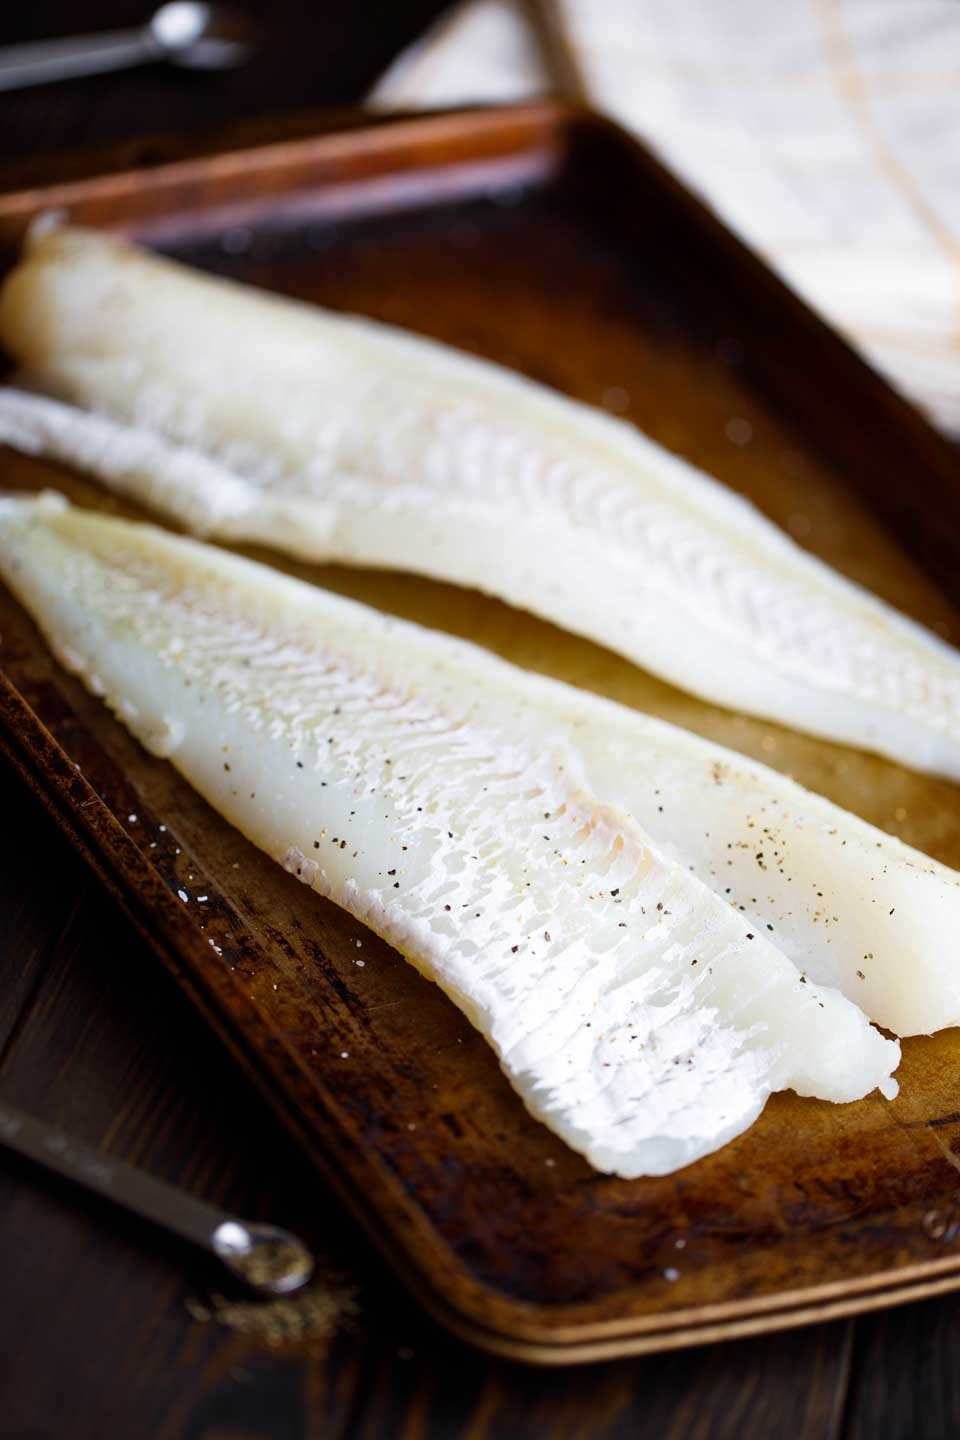 Photo of two cod fillets on baking tray, sprinkled with kosher salt and black pepper.